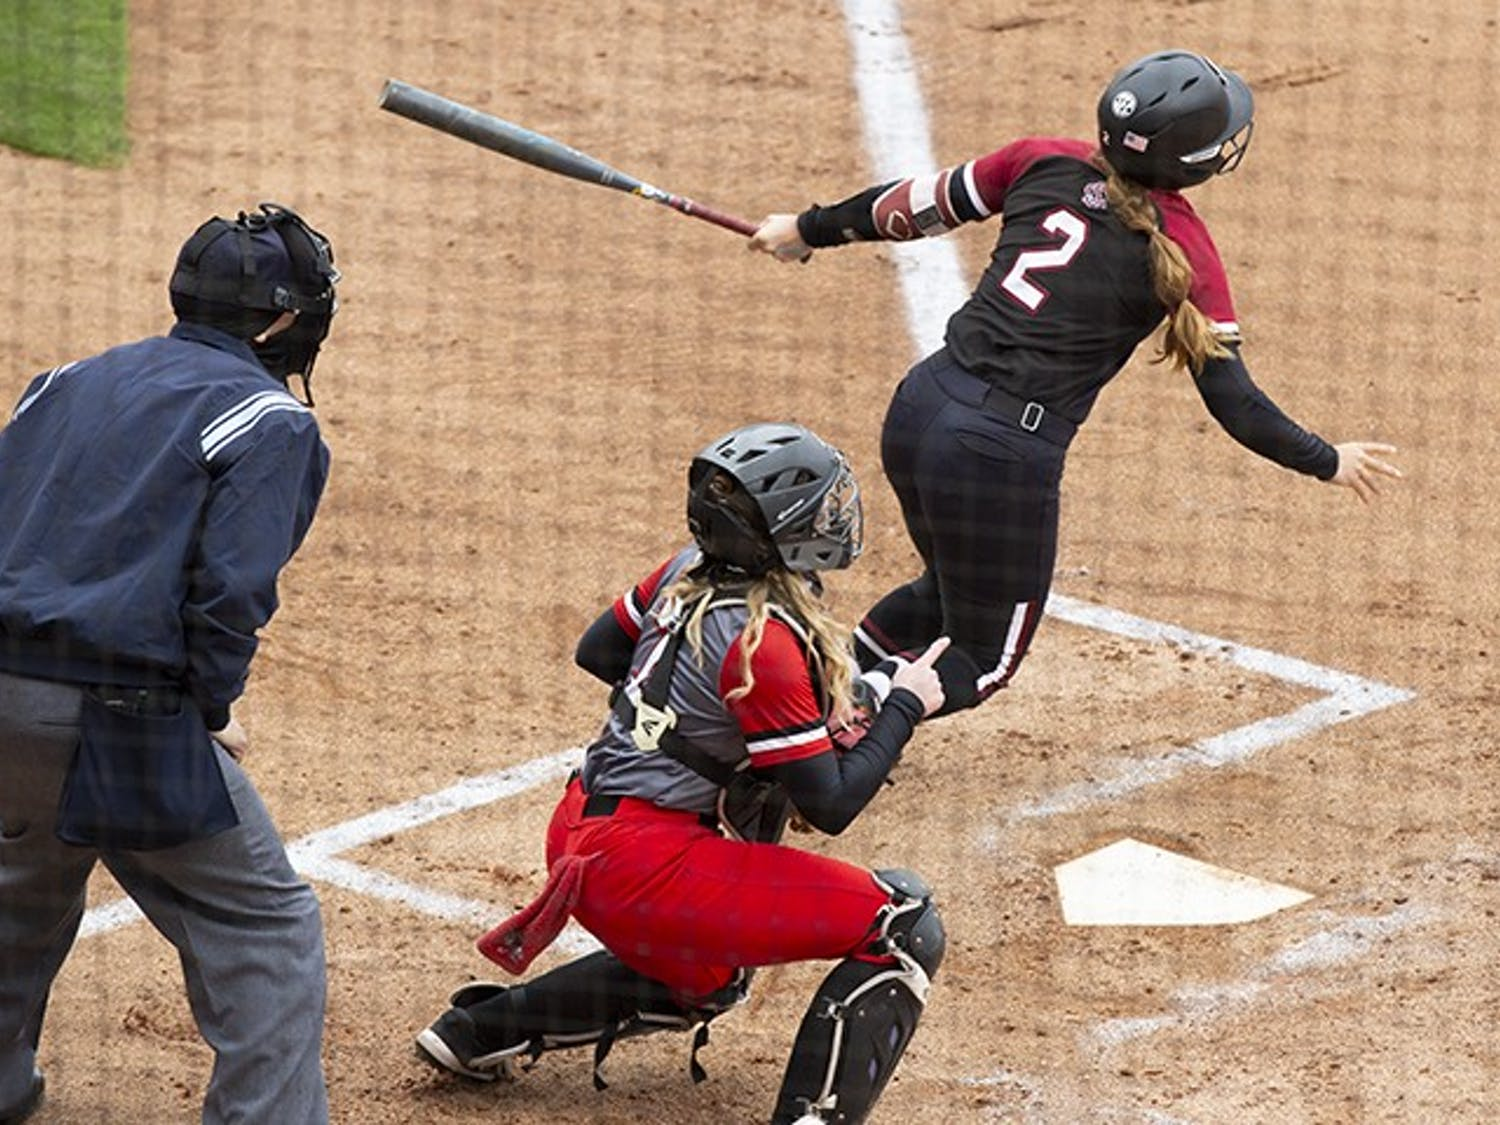 Graduate infielder Kenzi Maguire prepares to run after swinging at a ball from the opposing pitcher. South Carolina won 8-0 against Gardner-Webb University.